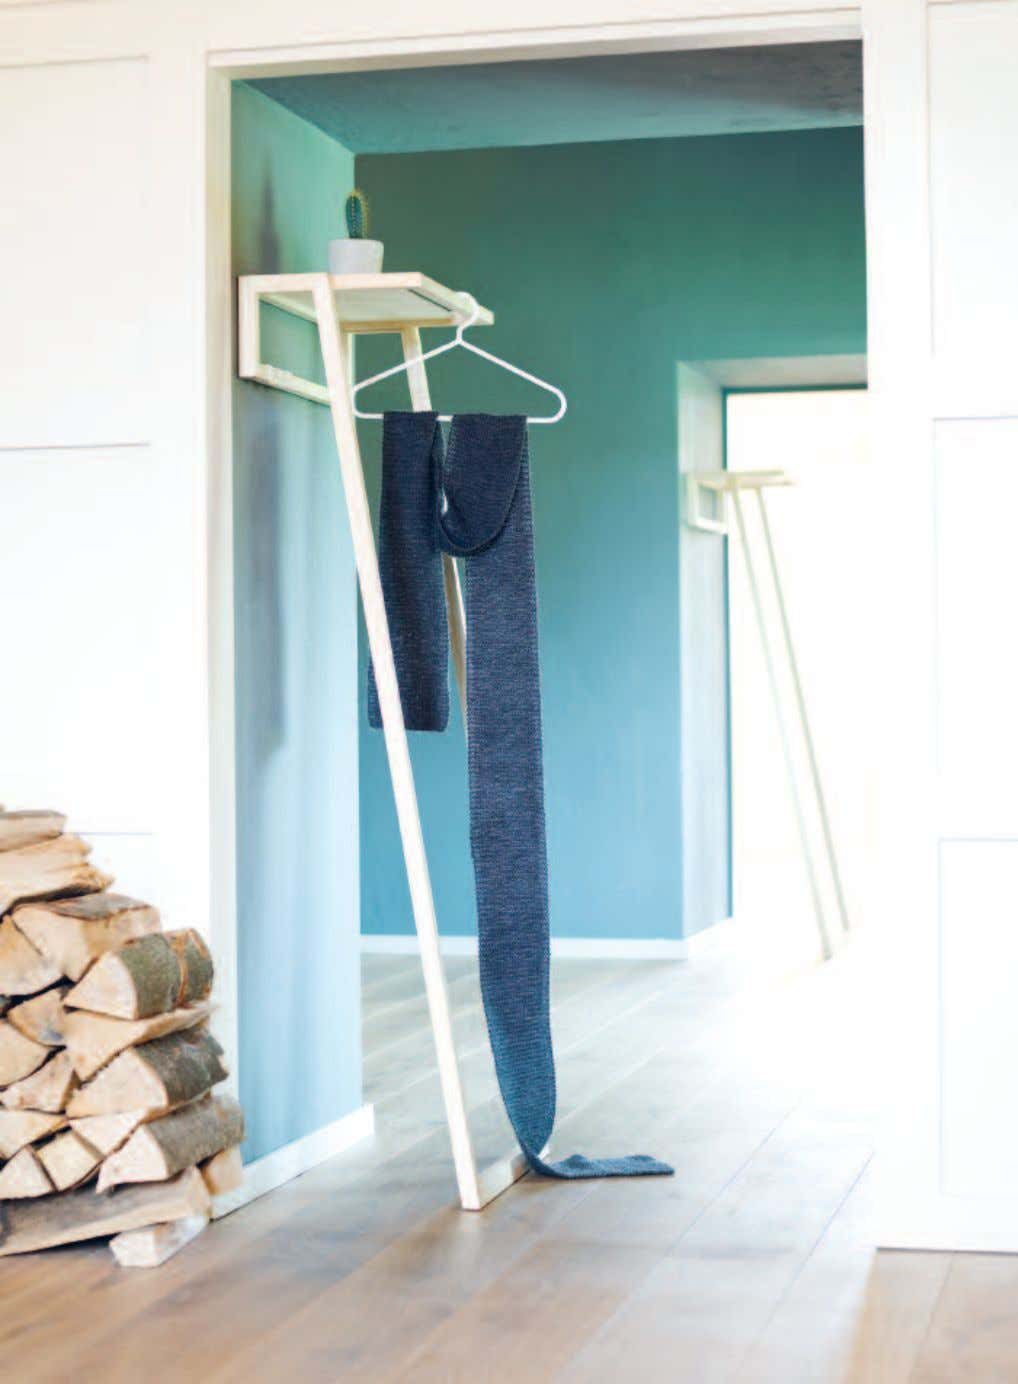 166 _GARDEROBEN / COAT RACKS